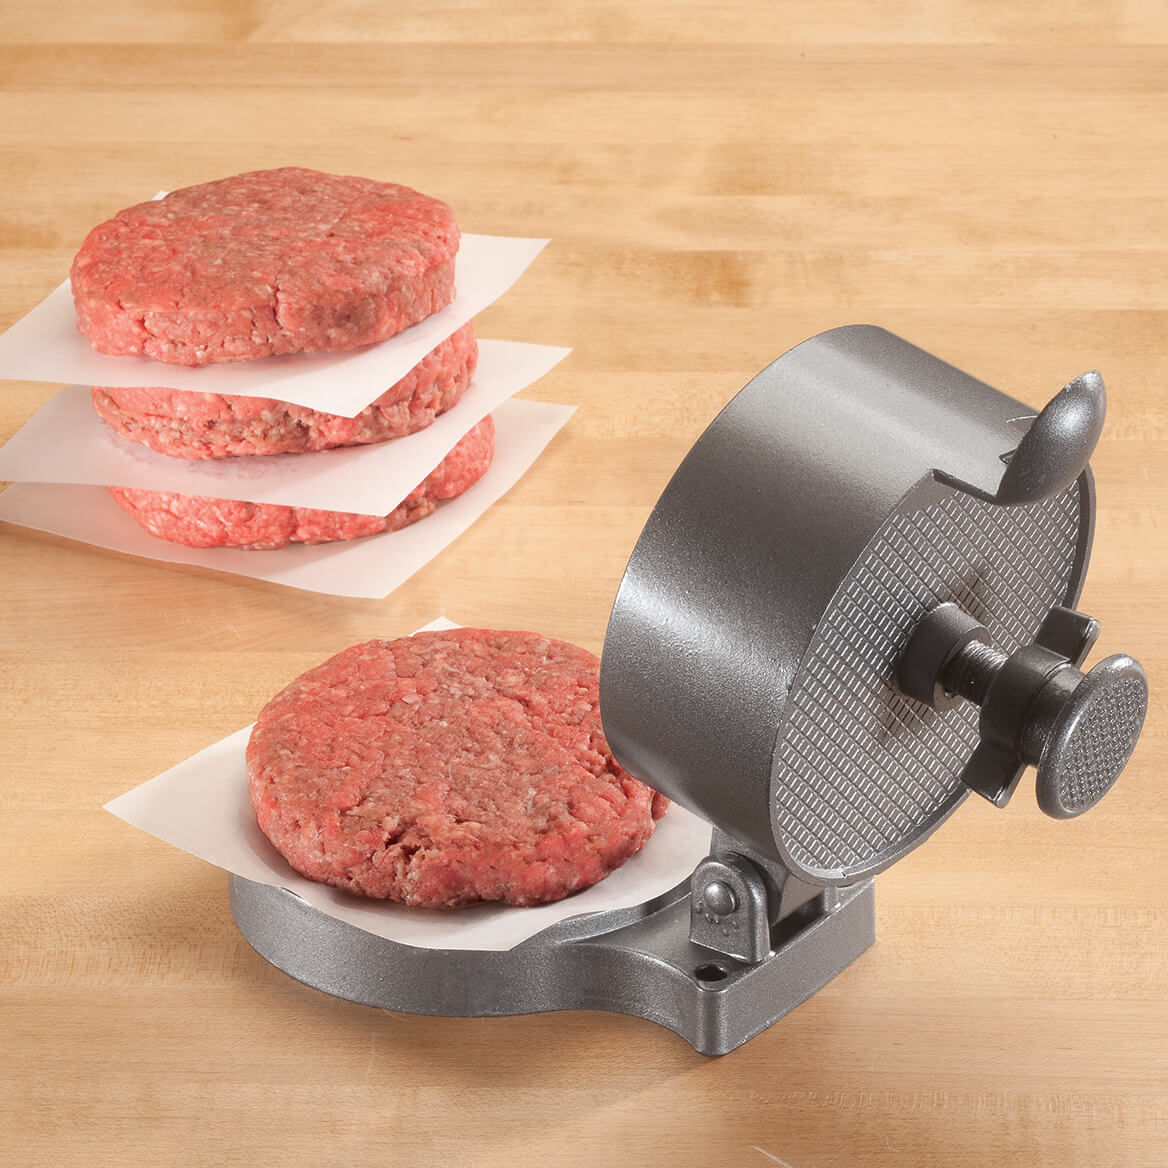 Aluminum Burger Press with Adjustable Thickness-351358